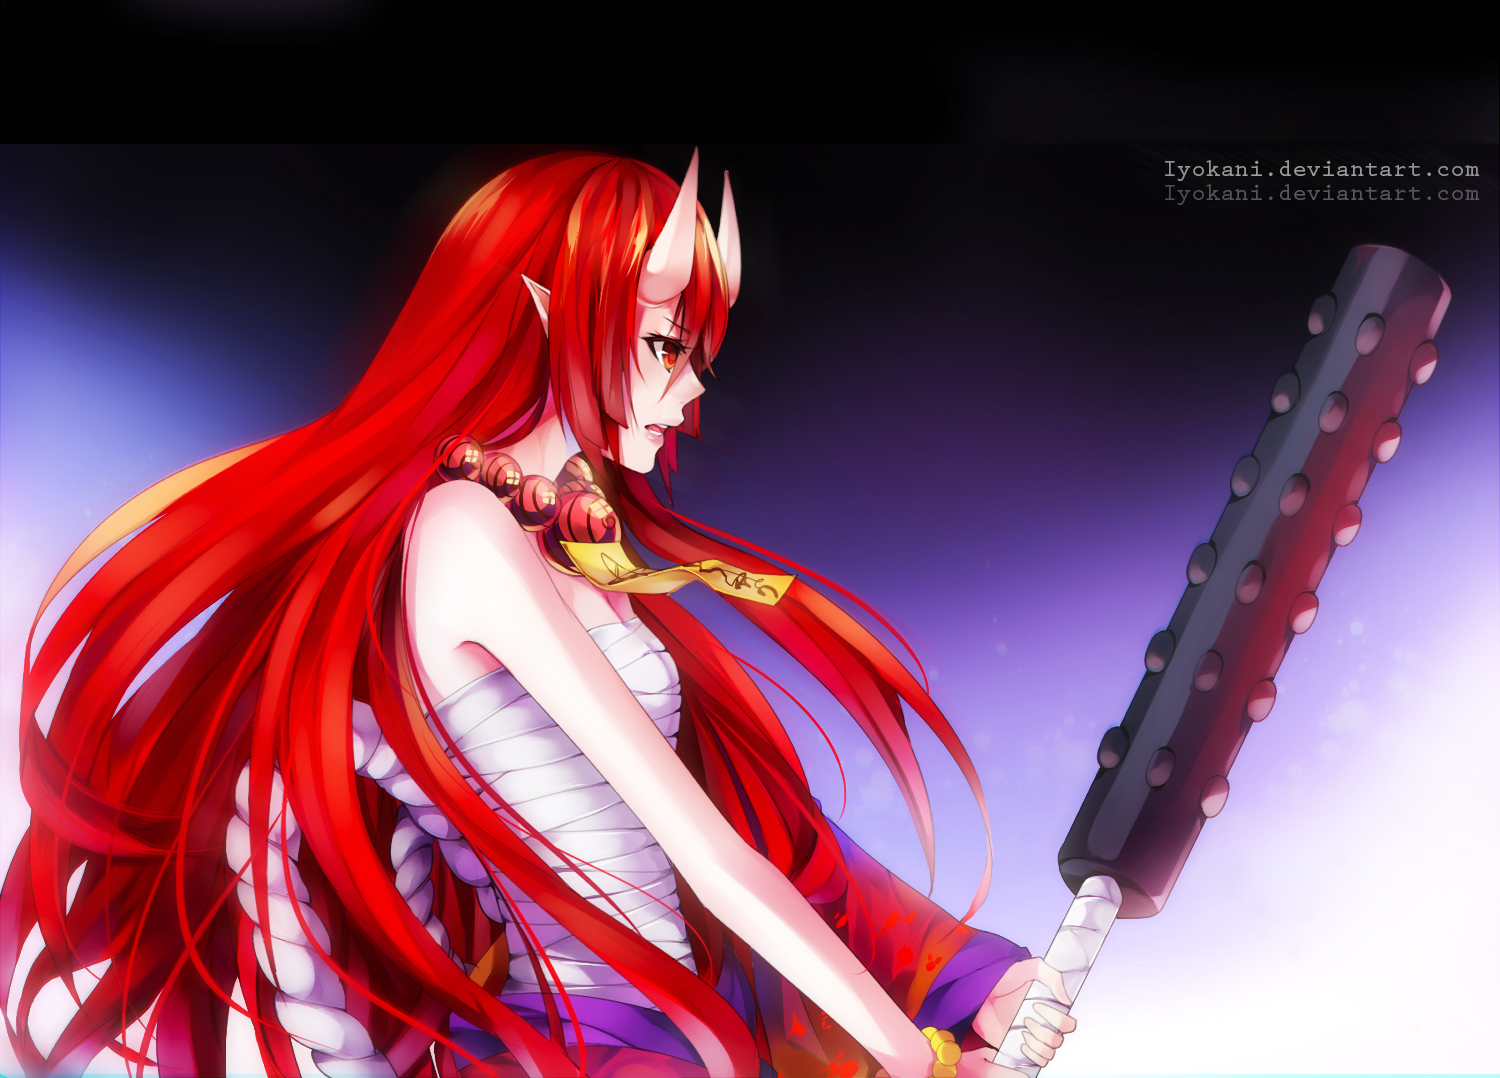 demon horns japanese_clothes long_hair necklace pointed_ears red_eyes red_hair sarashi tagme_(artist) underwear watermark weapon